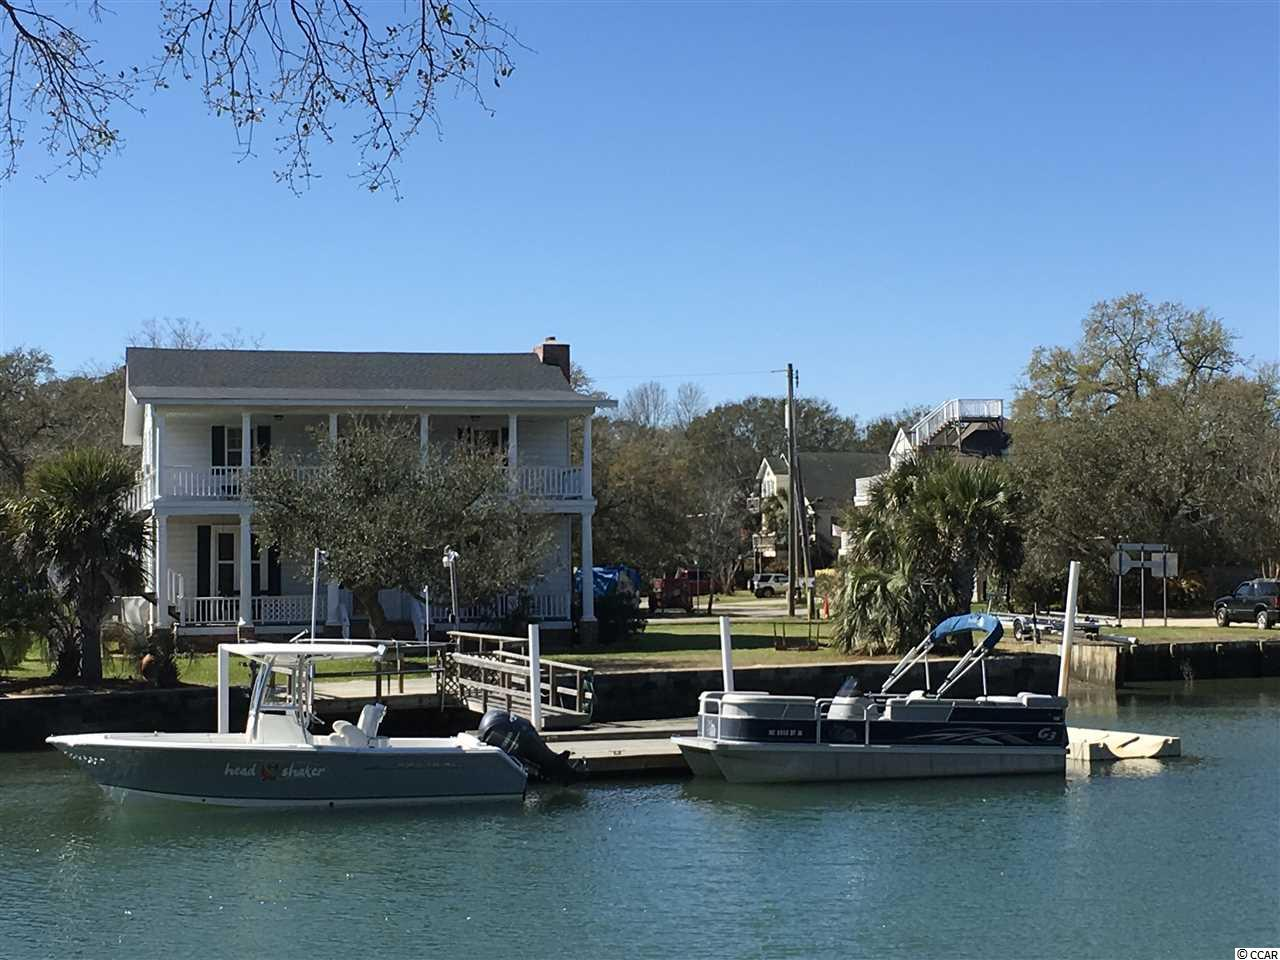 You Will Immediately Fall In Love With This Creek Front Home. Unique Beach Home with 103' of Direct Channel Access. This Home Radiates History and Fond Family Memories. Privately Owned BOAT RAMP. Not to mention a Stationary Dock - 16 x 14, 2 Floating Docks - 48' x 8' and the 2nd Dock - 16' x 10'   with a Walkway 16' x 3'- AND a Concrete Sea Wall.  Plenty of Room to Dock Several Boats. The Yard is a Great Size for Children Playing or Family Games and Barbecues. The Stationary Dock is set up with a Utility Sink to Clean Those Freshly Caught Fish as well as a Built in Bench.  All measurements are deemed reliable however, not guaranteed. Buyer(s) responsible for verification.  Interior Completed with Reclaimed Wood from a Church and a Railroad Station in Marion. 7 Bedrooms Total and 4 Baths, 2 Laundry Rooms and 2 Family/ Bonus Areas.  Great Place to Gather the Entire Family for Memorable Summer Parties and All Year Round Gatherings.  DIRECTLY on the INLET and Five Minutes Away From  Restaurants,Entertainment and The Inlet Marsh Walk. Amazing Views of the Inlet from Both 34' Porches and a Wonderful Balmy Breeze Off the Inlet.